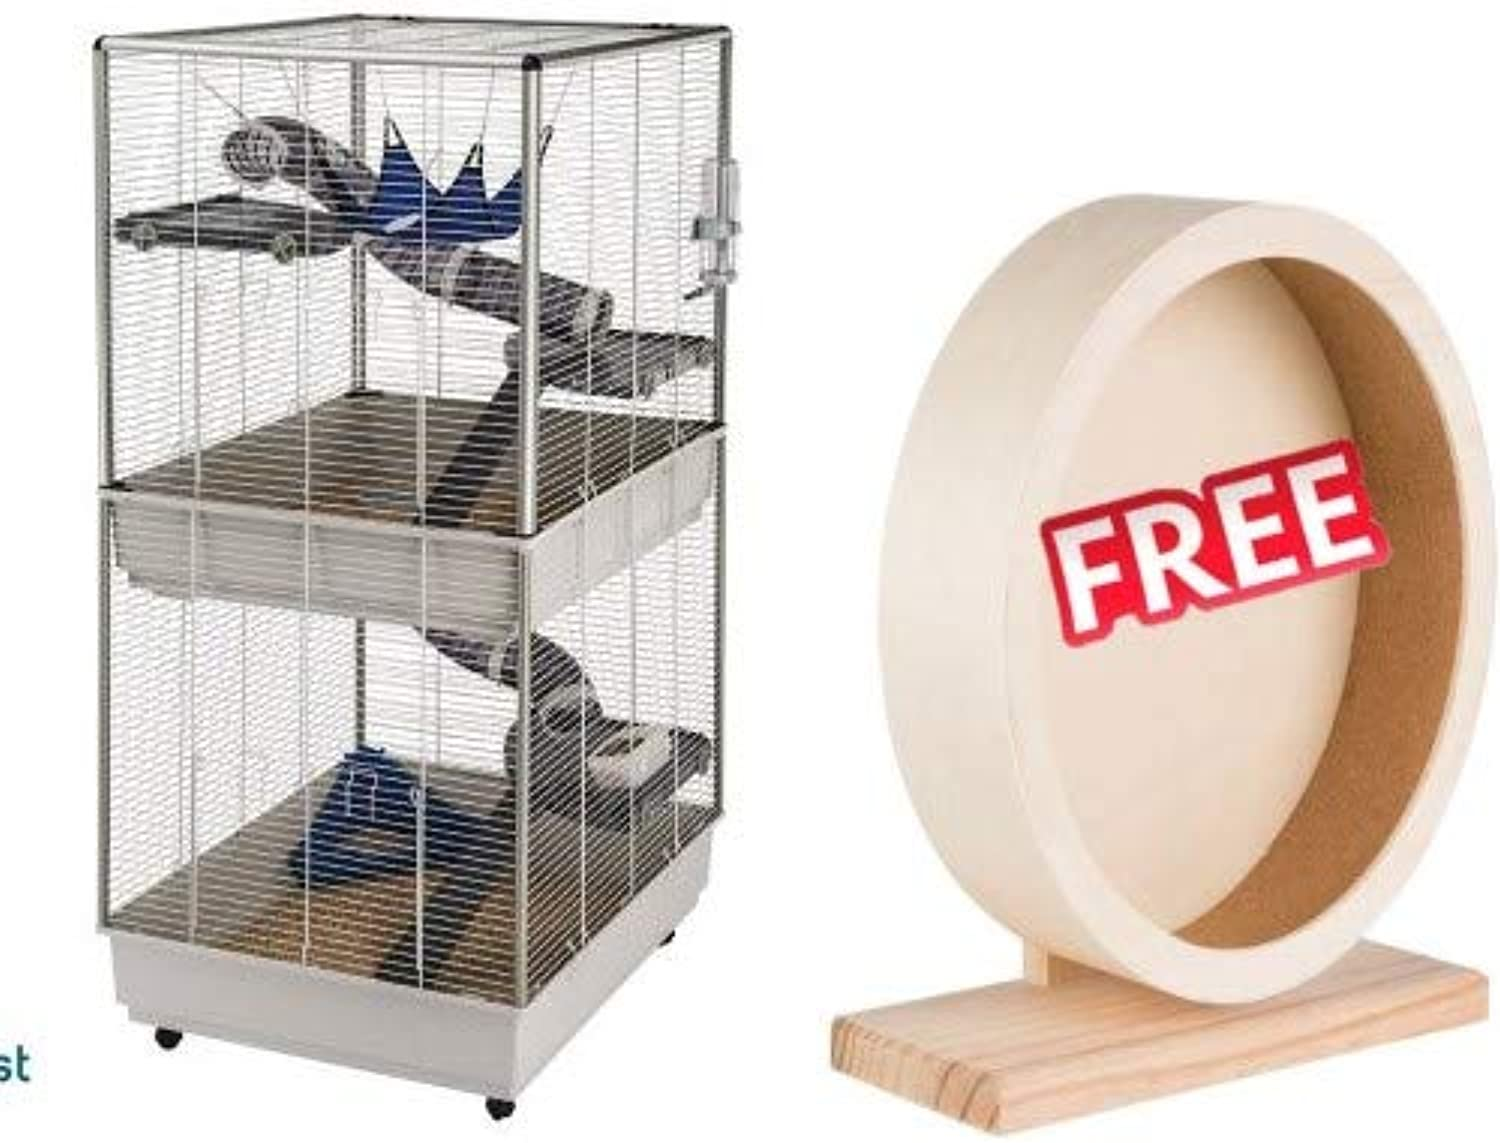 Ferret Ferplast Cage Furet Tower Rectangular Roomy Cage with 2 Levels Mobile Grey 80 x 75 x 161 cm Accessories Included FREE Trixie Wooden Exercise Wheel